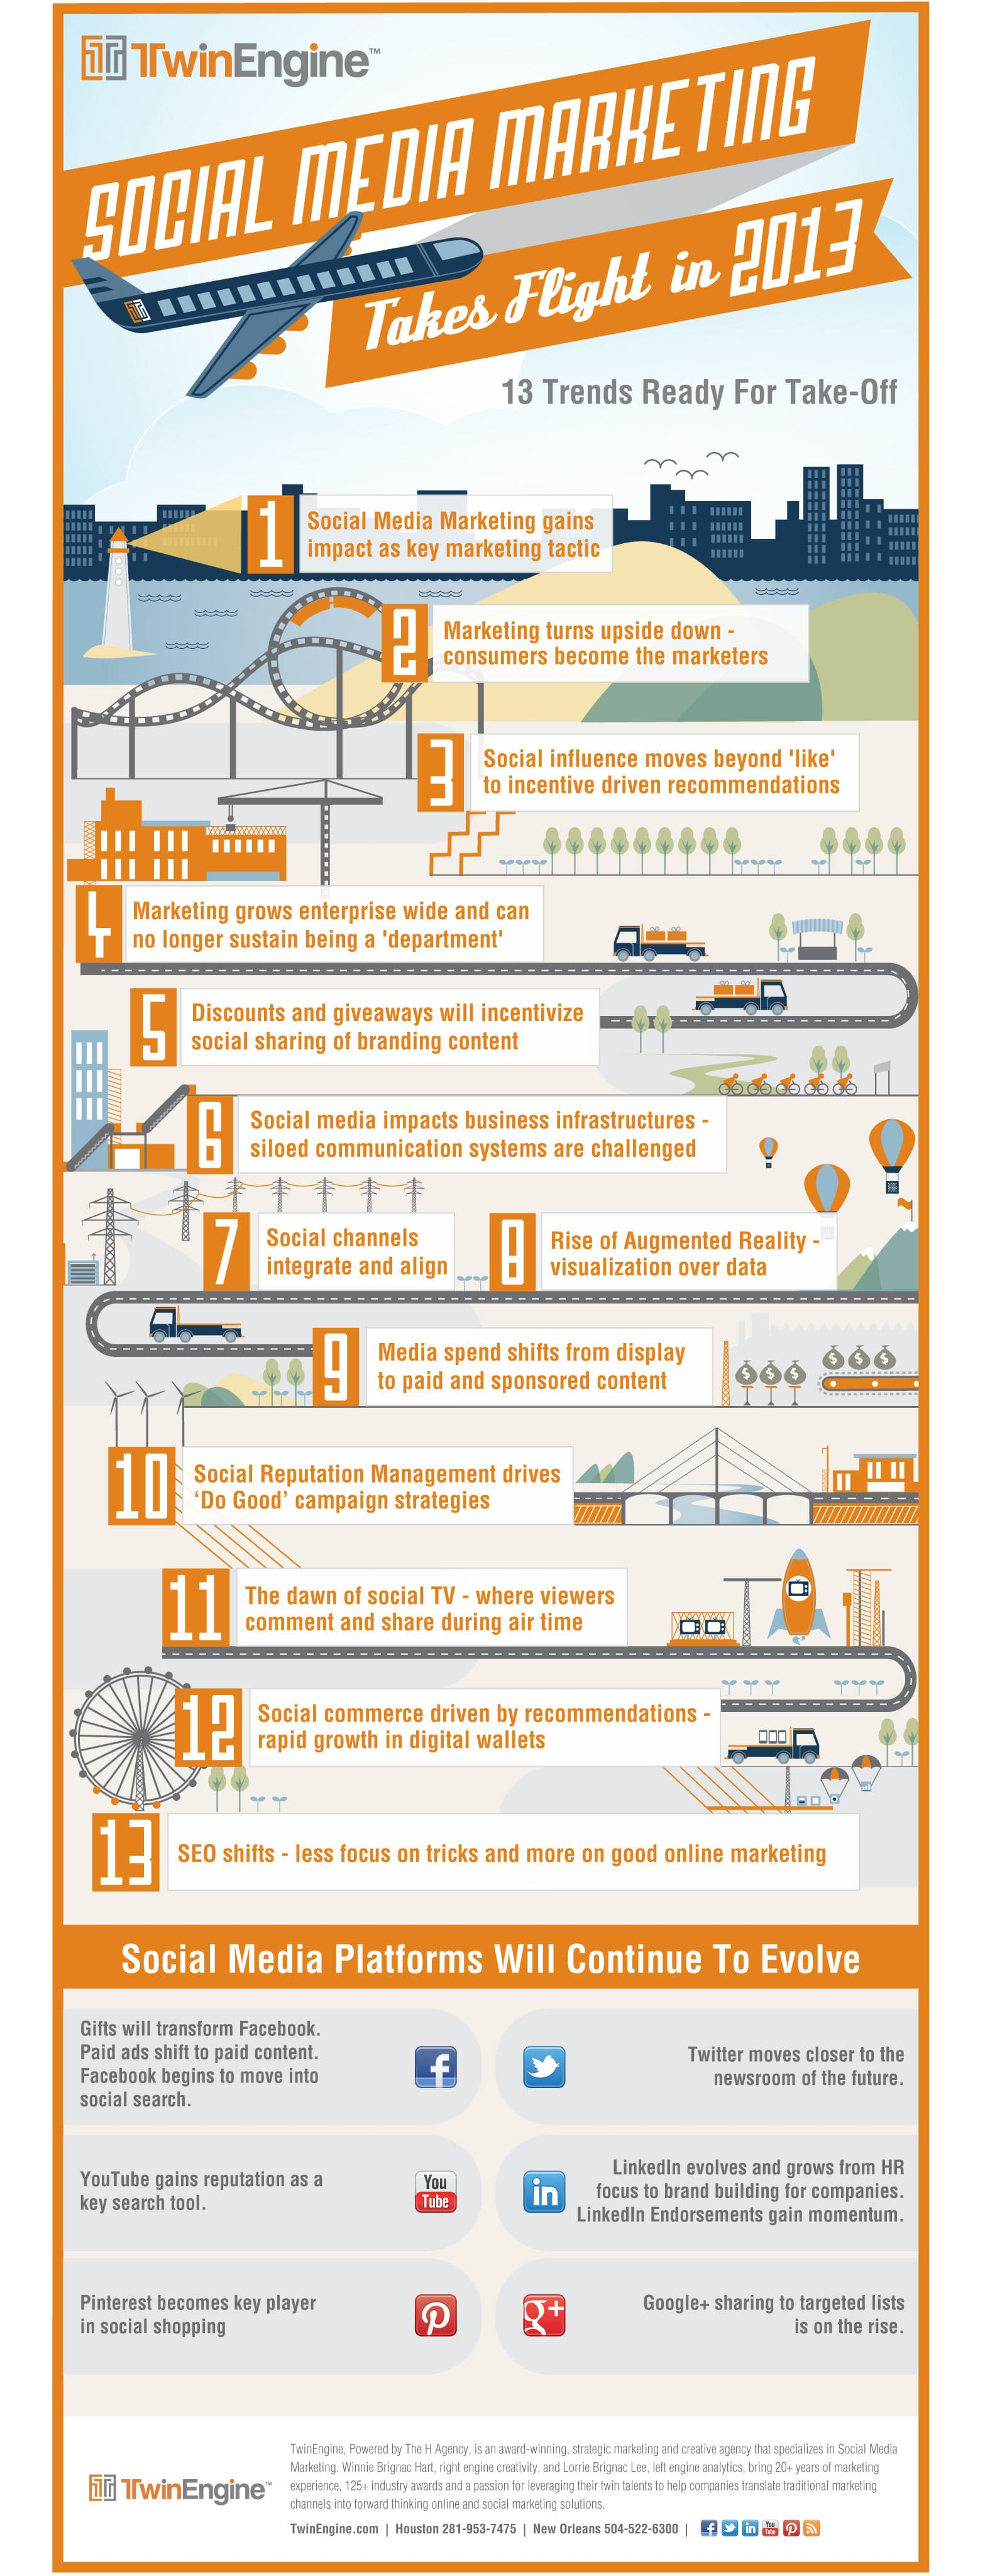 Internet Marketing Trends Ready To Take Off In 2013 [Infographic]